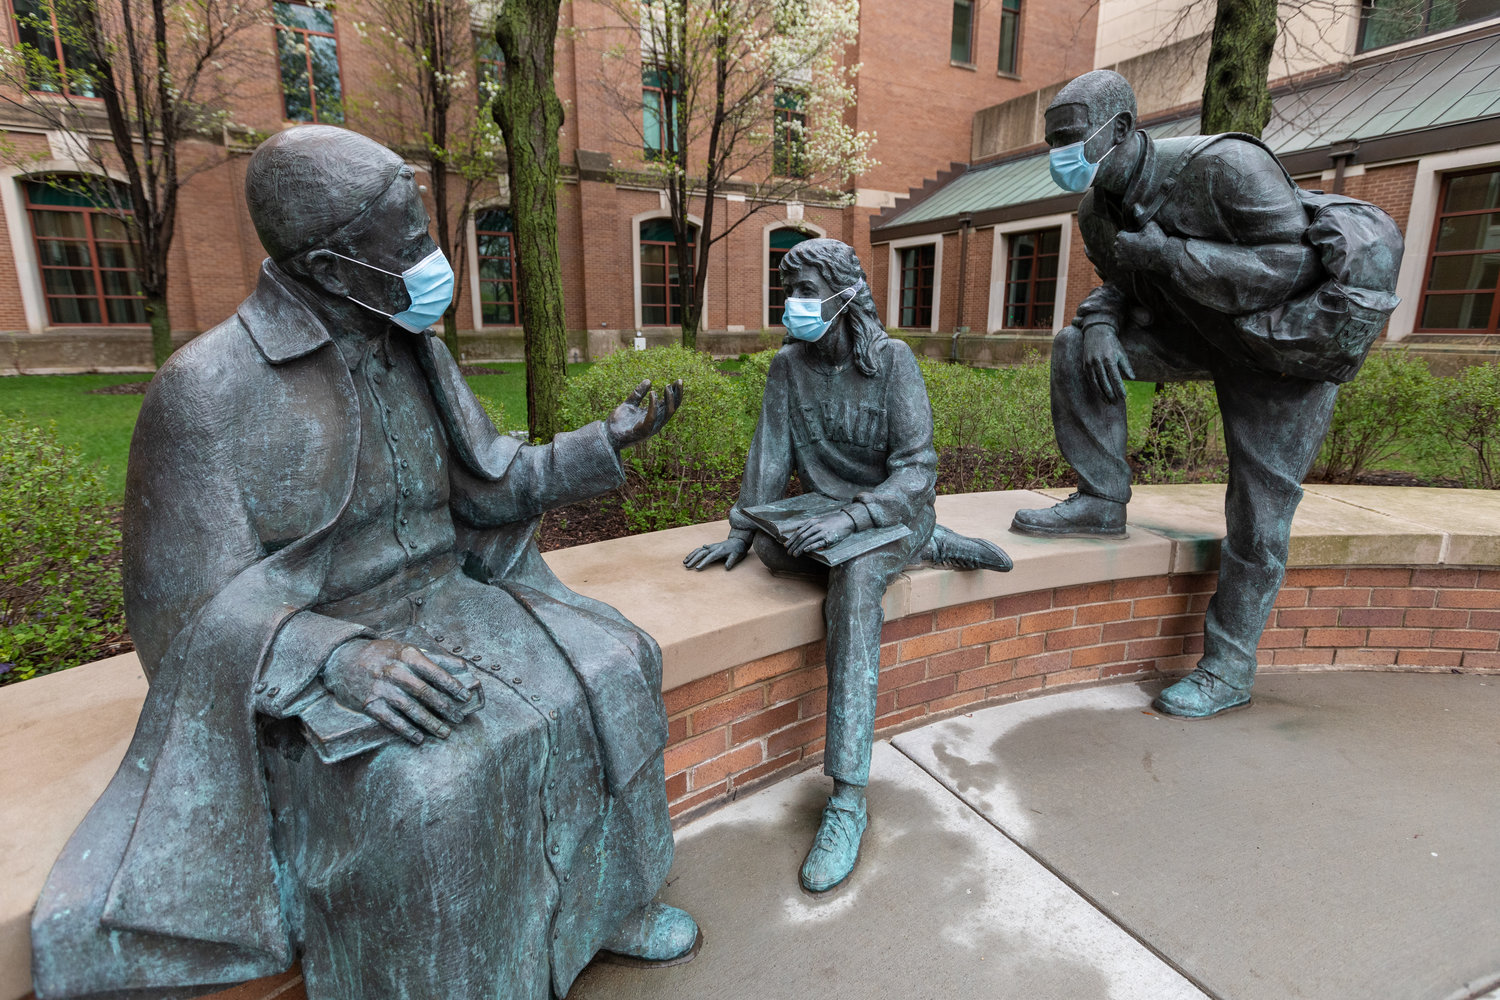 The statues in St Vincent's Circle on DePaul University's Chicago campus are decorated with protective face masks April 30, 2020, during the COVID-19 pandemic. School officials say extreme caution tops the checklists for Catholic colleges throughout the U.S. to reopen in the fall.